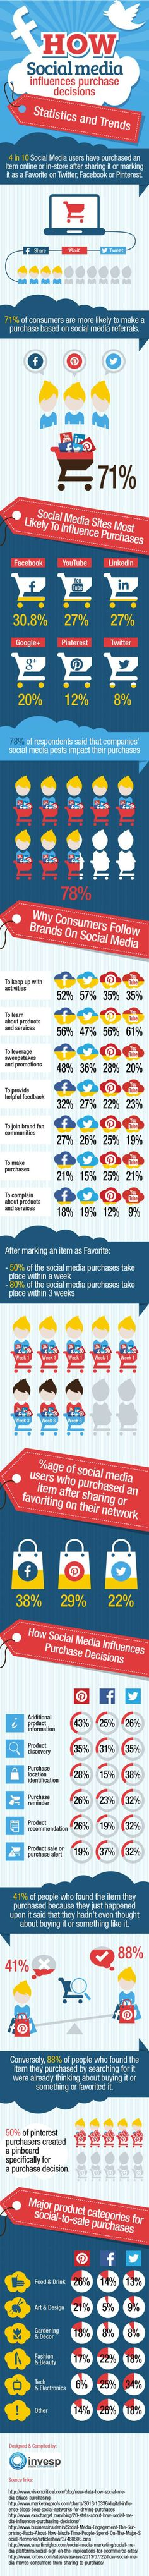 social-media-purchase-decisions